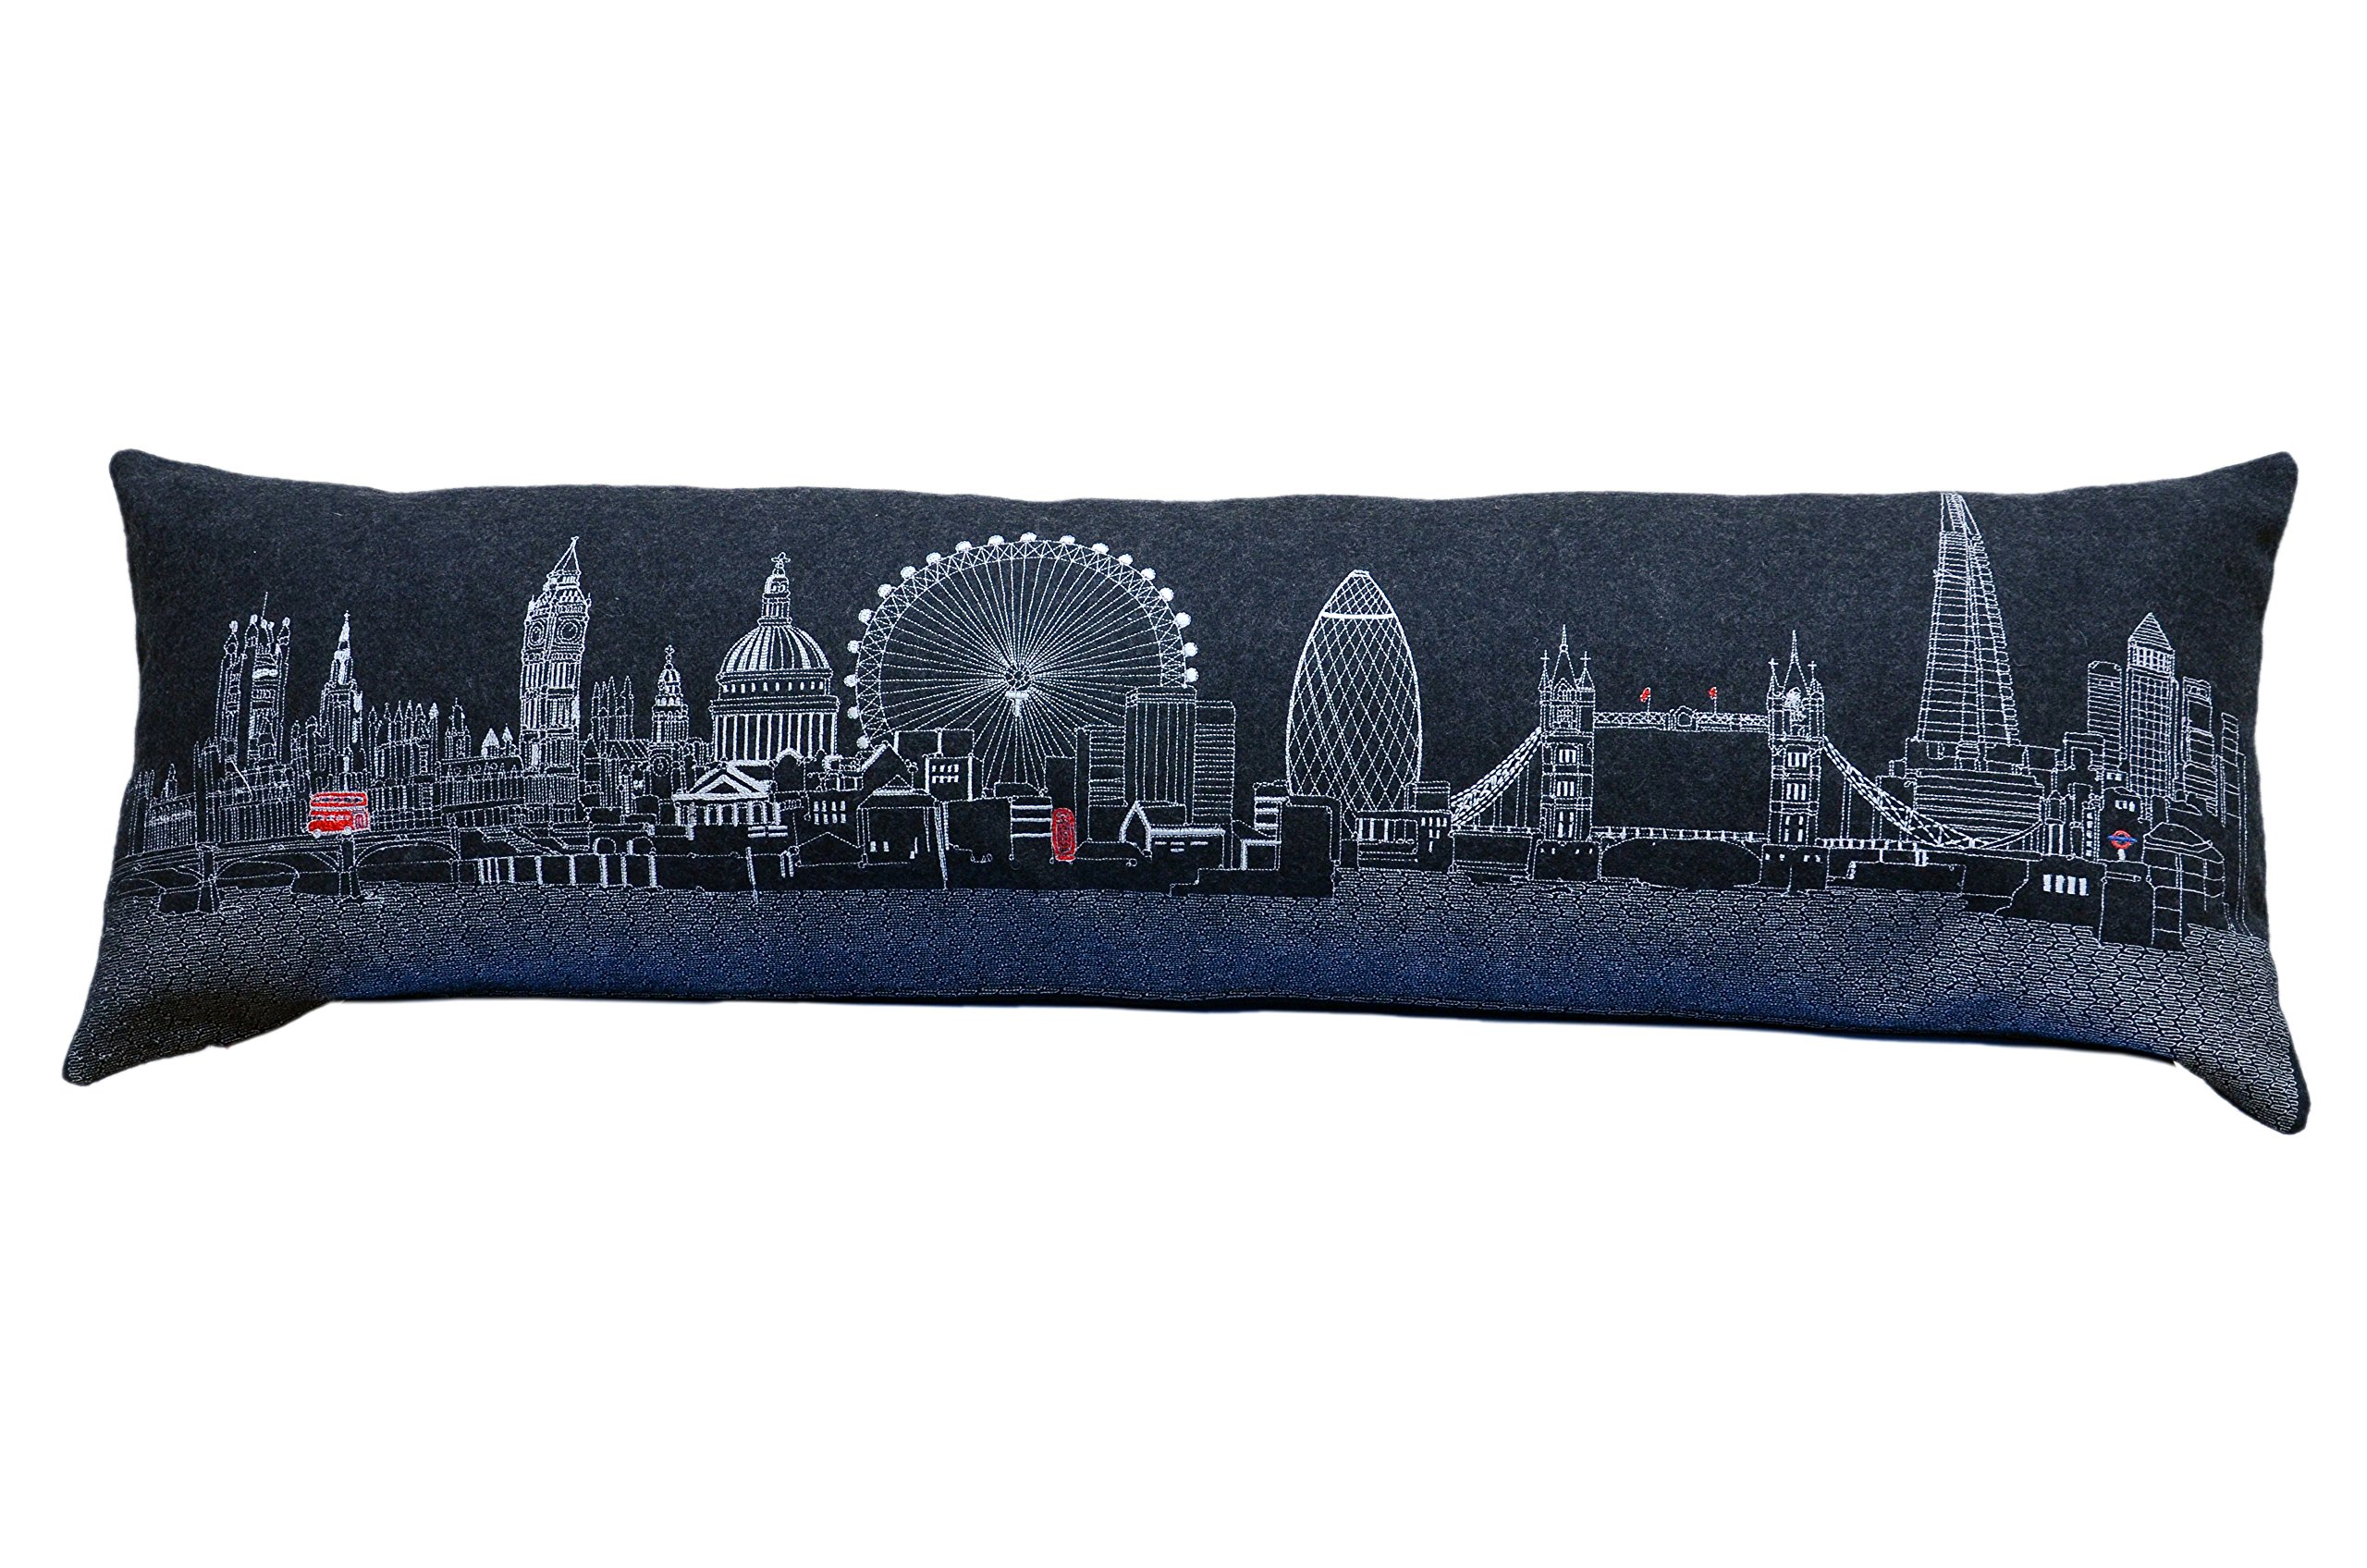 Beyond Cushions Polyester Throw Pillows Beyond Cushions London England Night Skyline King Size Embroidered Accent Pillow 46 X 14 X 5 Inches Black Model # LON-NGT-KNG